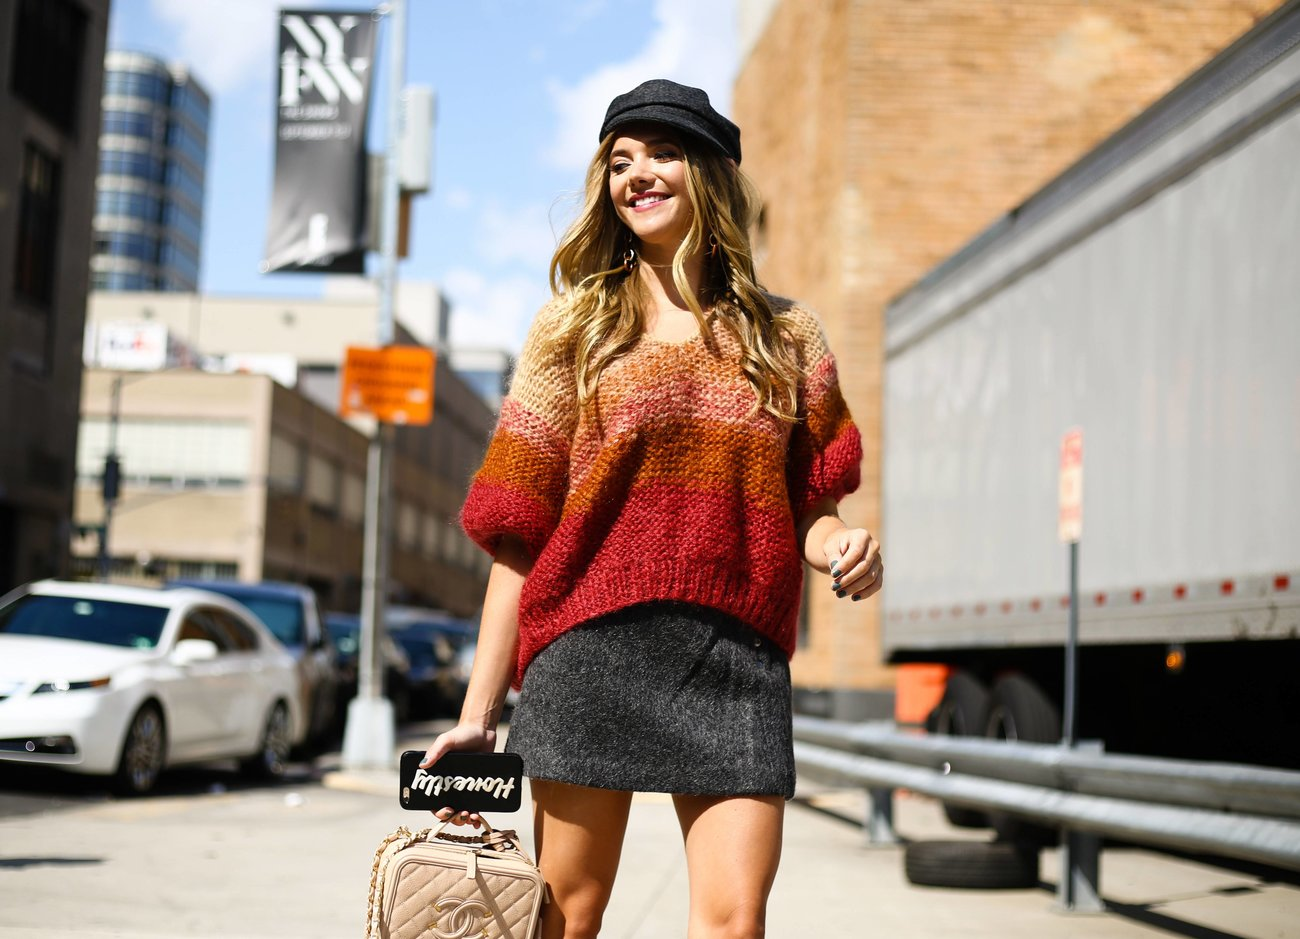 Blogger Katie Sands of Honestlykate posing on the street during New York Fashion Week in New York Ci